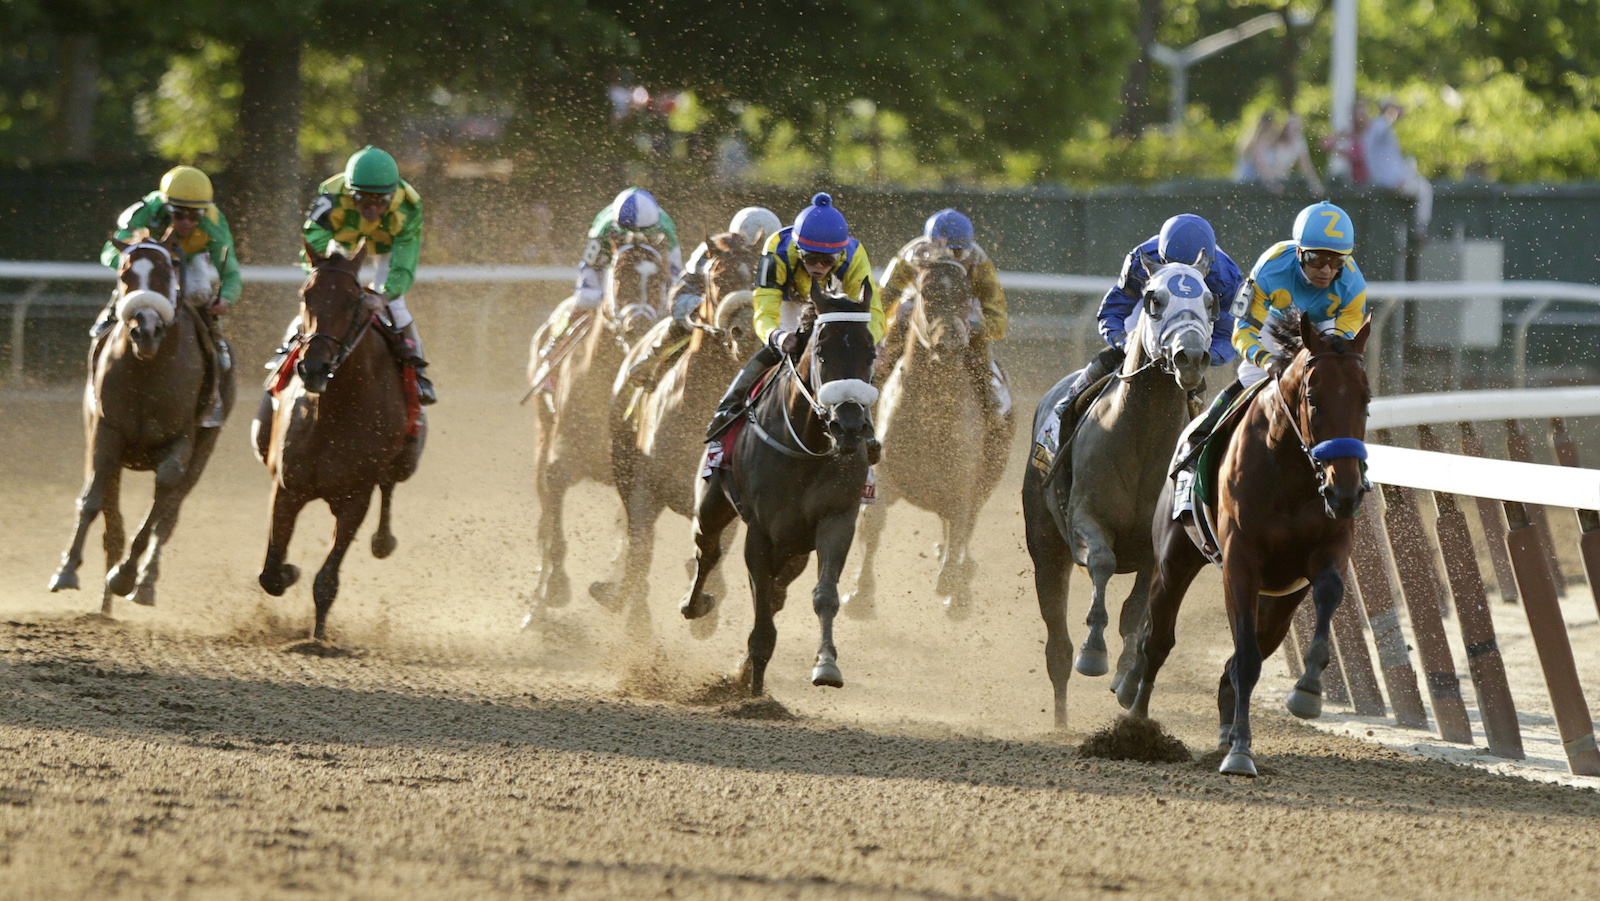 American Pharoah, with Victor Espinoza up,  rounds the fourth turn at the 147th running of the Belmont Stakes horse race Saturday, June 6, 2015, in Elmont, N.Y. American Pharoah led all the way to win the Belmont Stakes by 5 ½ lengths on Saturday, becoming the first horse in 37 years to sweep the Kentucky Derby, Preakness and Belmont Stakes - one of the sporting world's rarest feats.